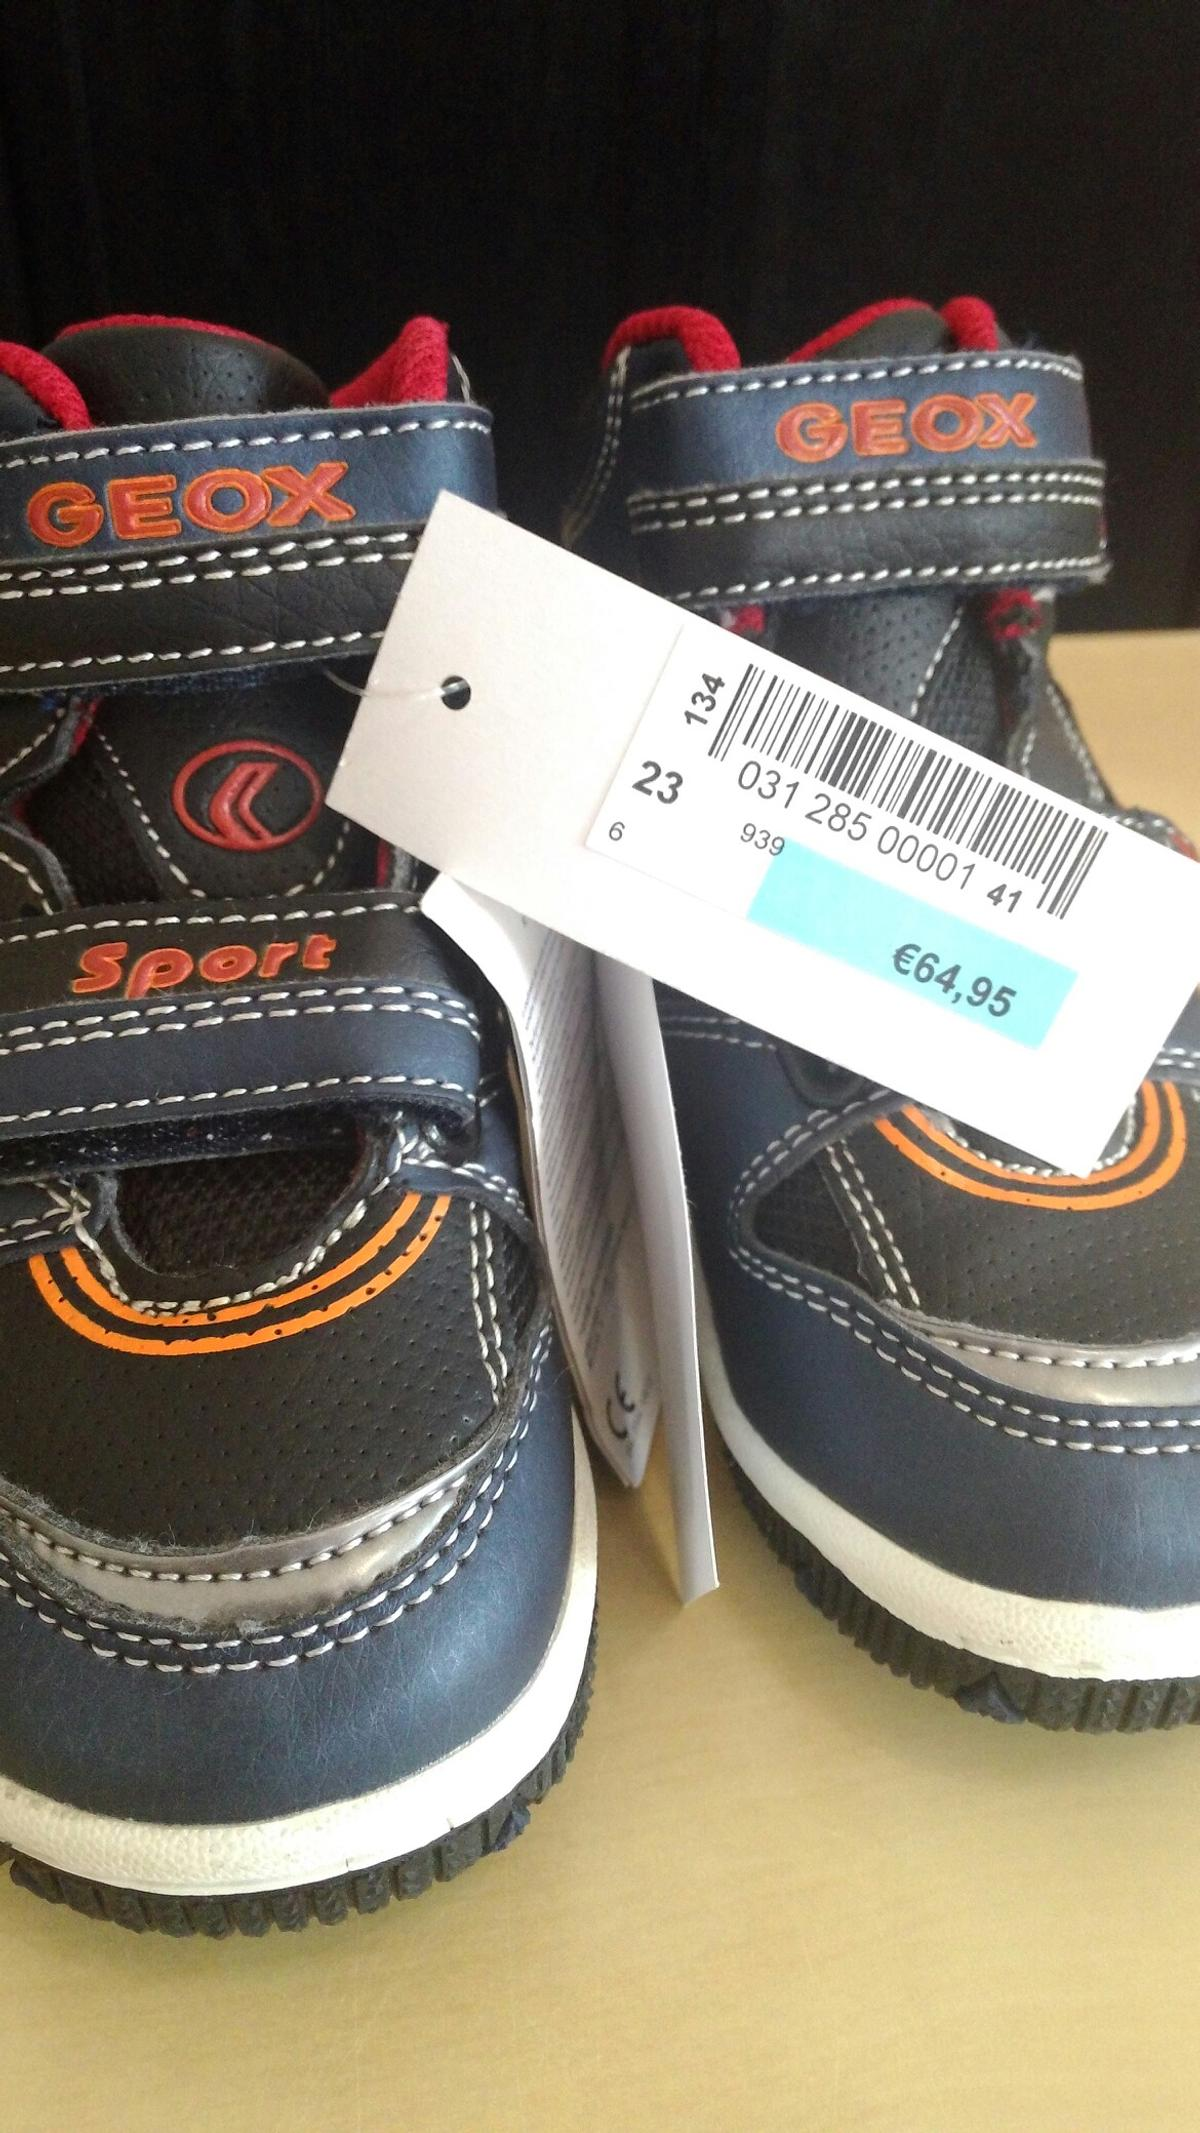 58993f2e299f2e Kinderschuhe Geox in 54294 Trier for €45.00 for sale - Shpock